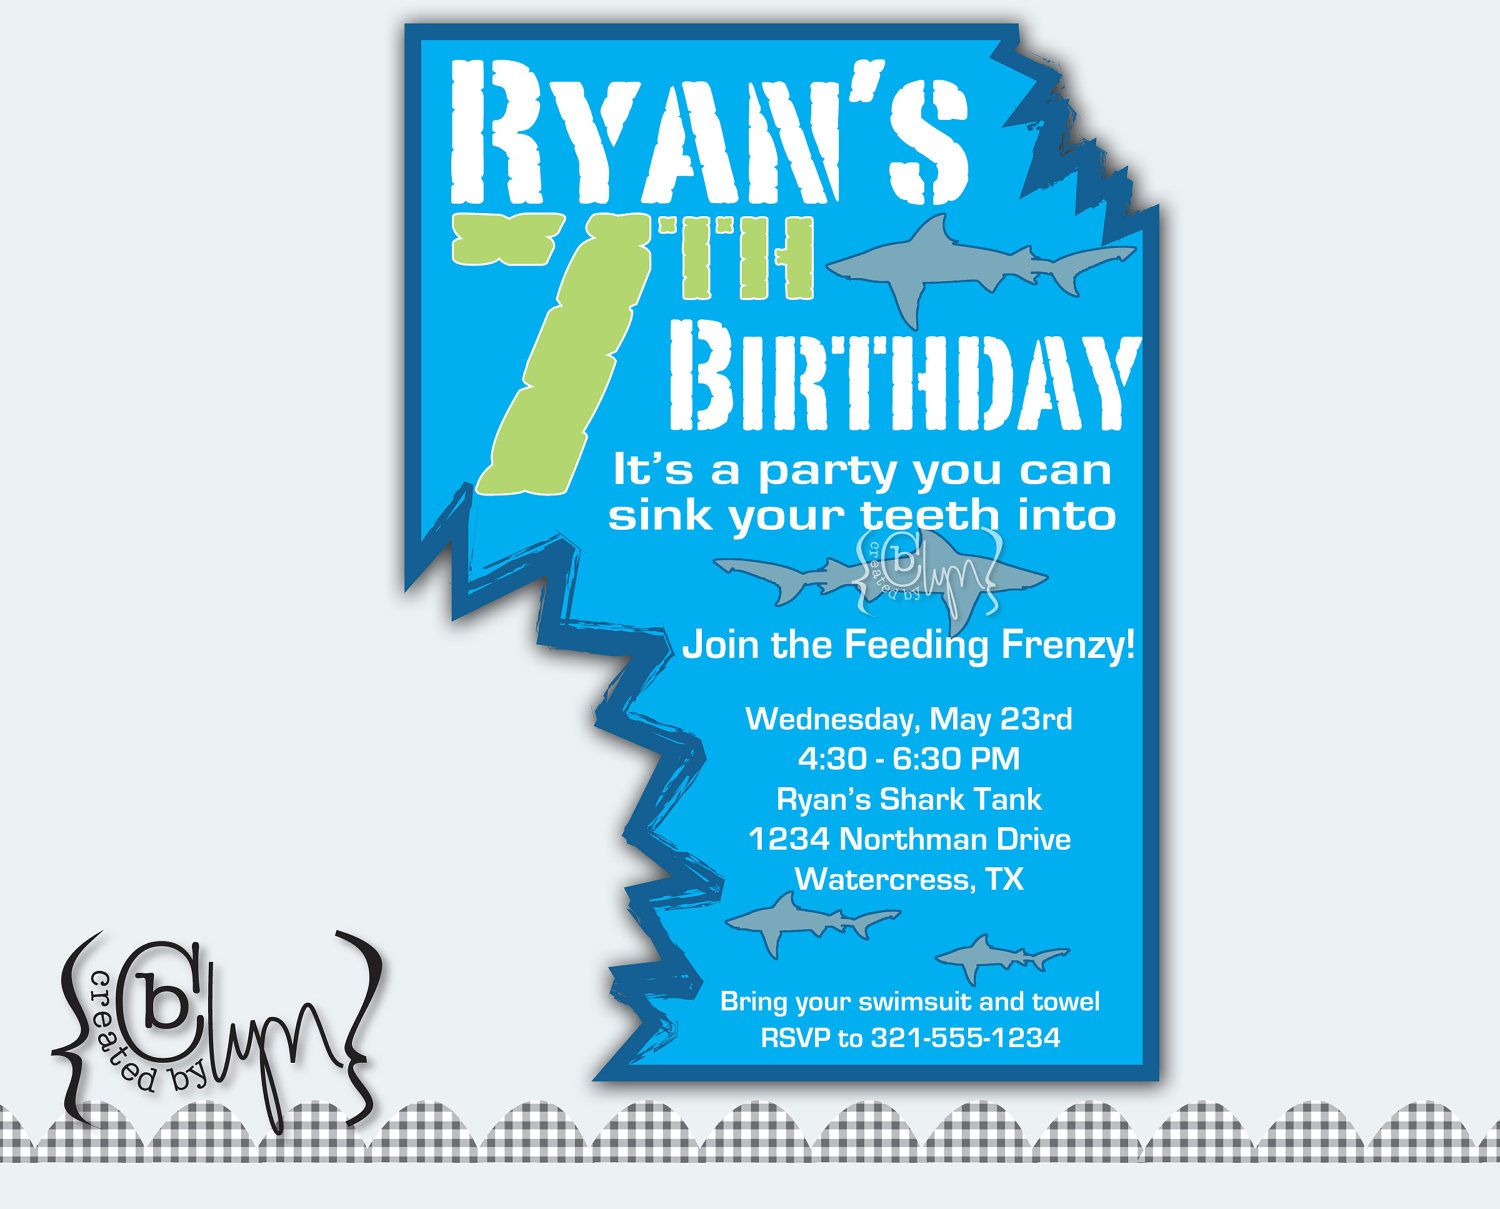 shark birthday party invitations as an extra ideas about how to, Party invitations